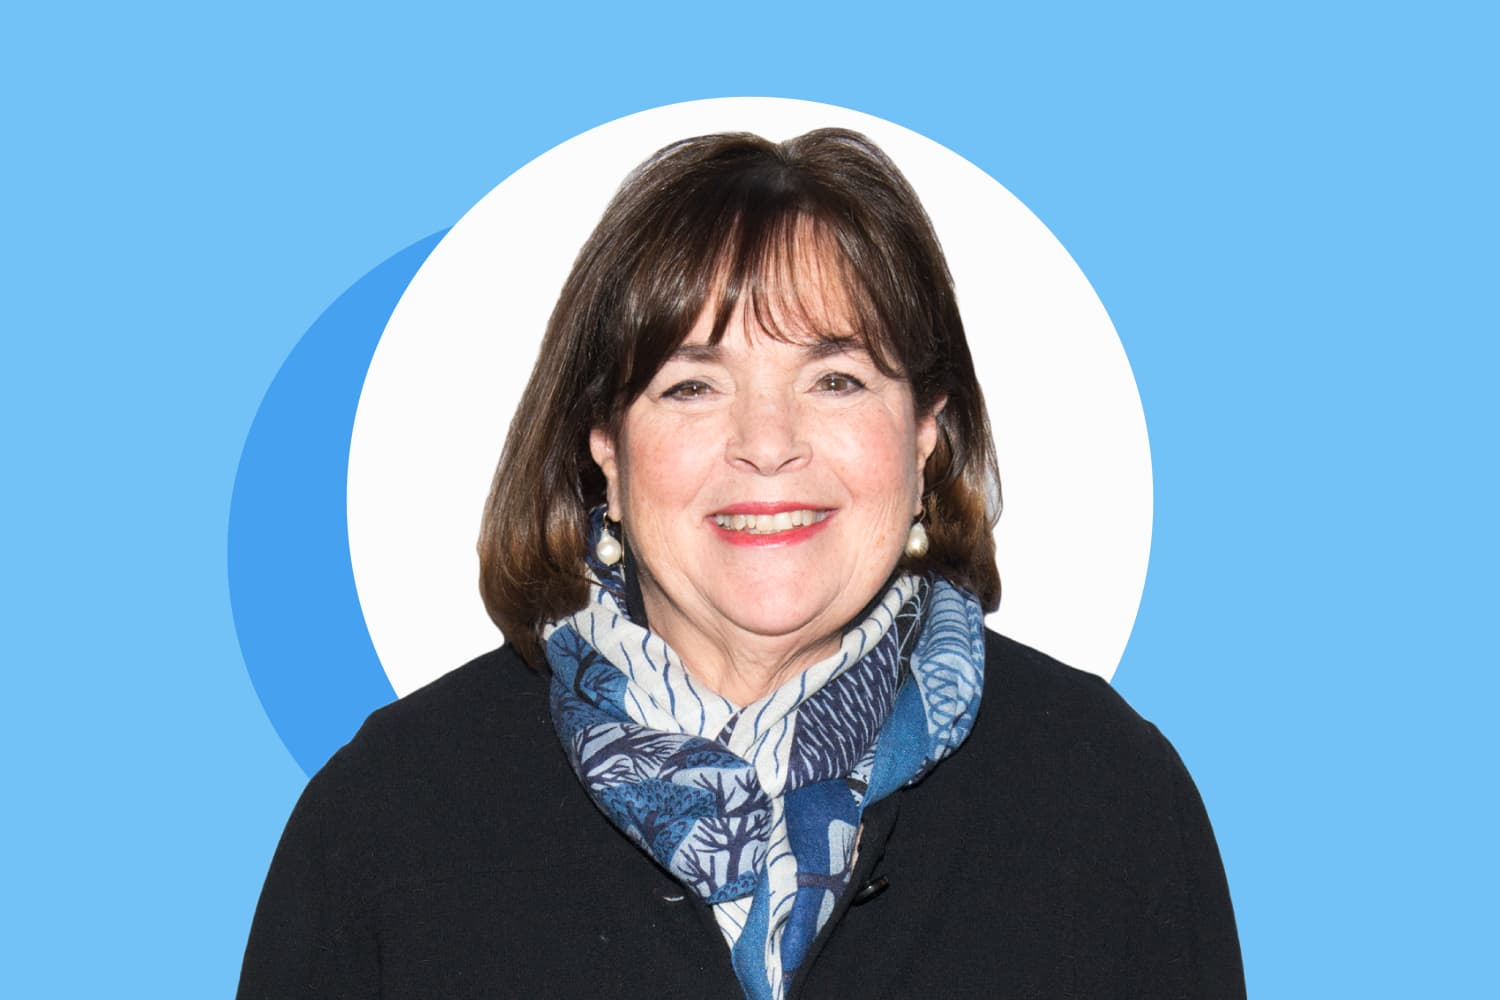 Ina Garten's Tip for Crisp-on-the-Outside, Gooey-on-the-Inside Chocolate Chip Cookies